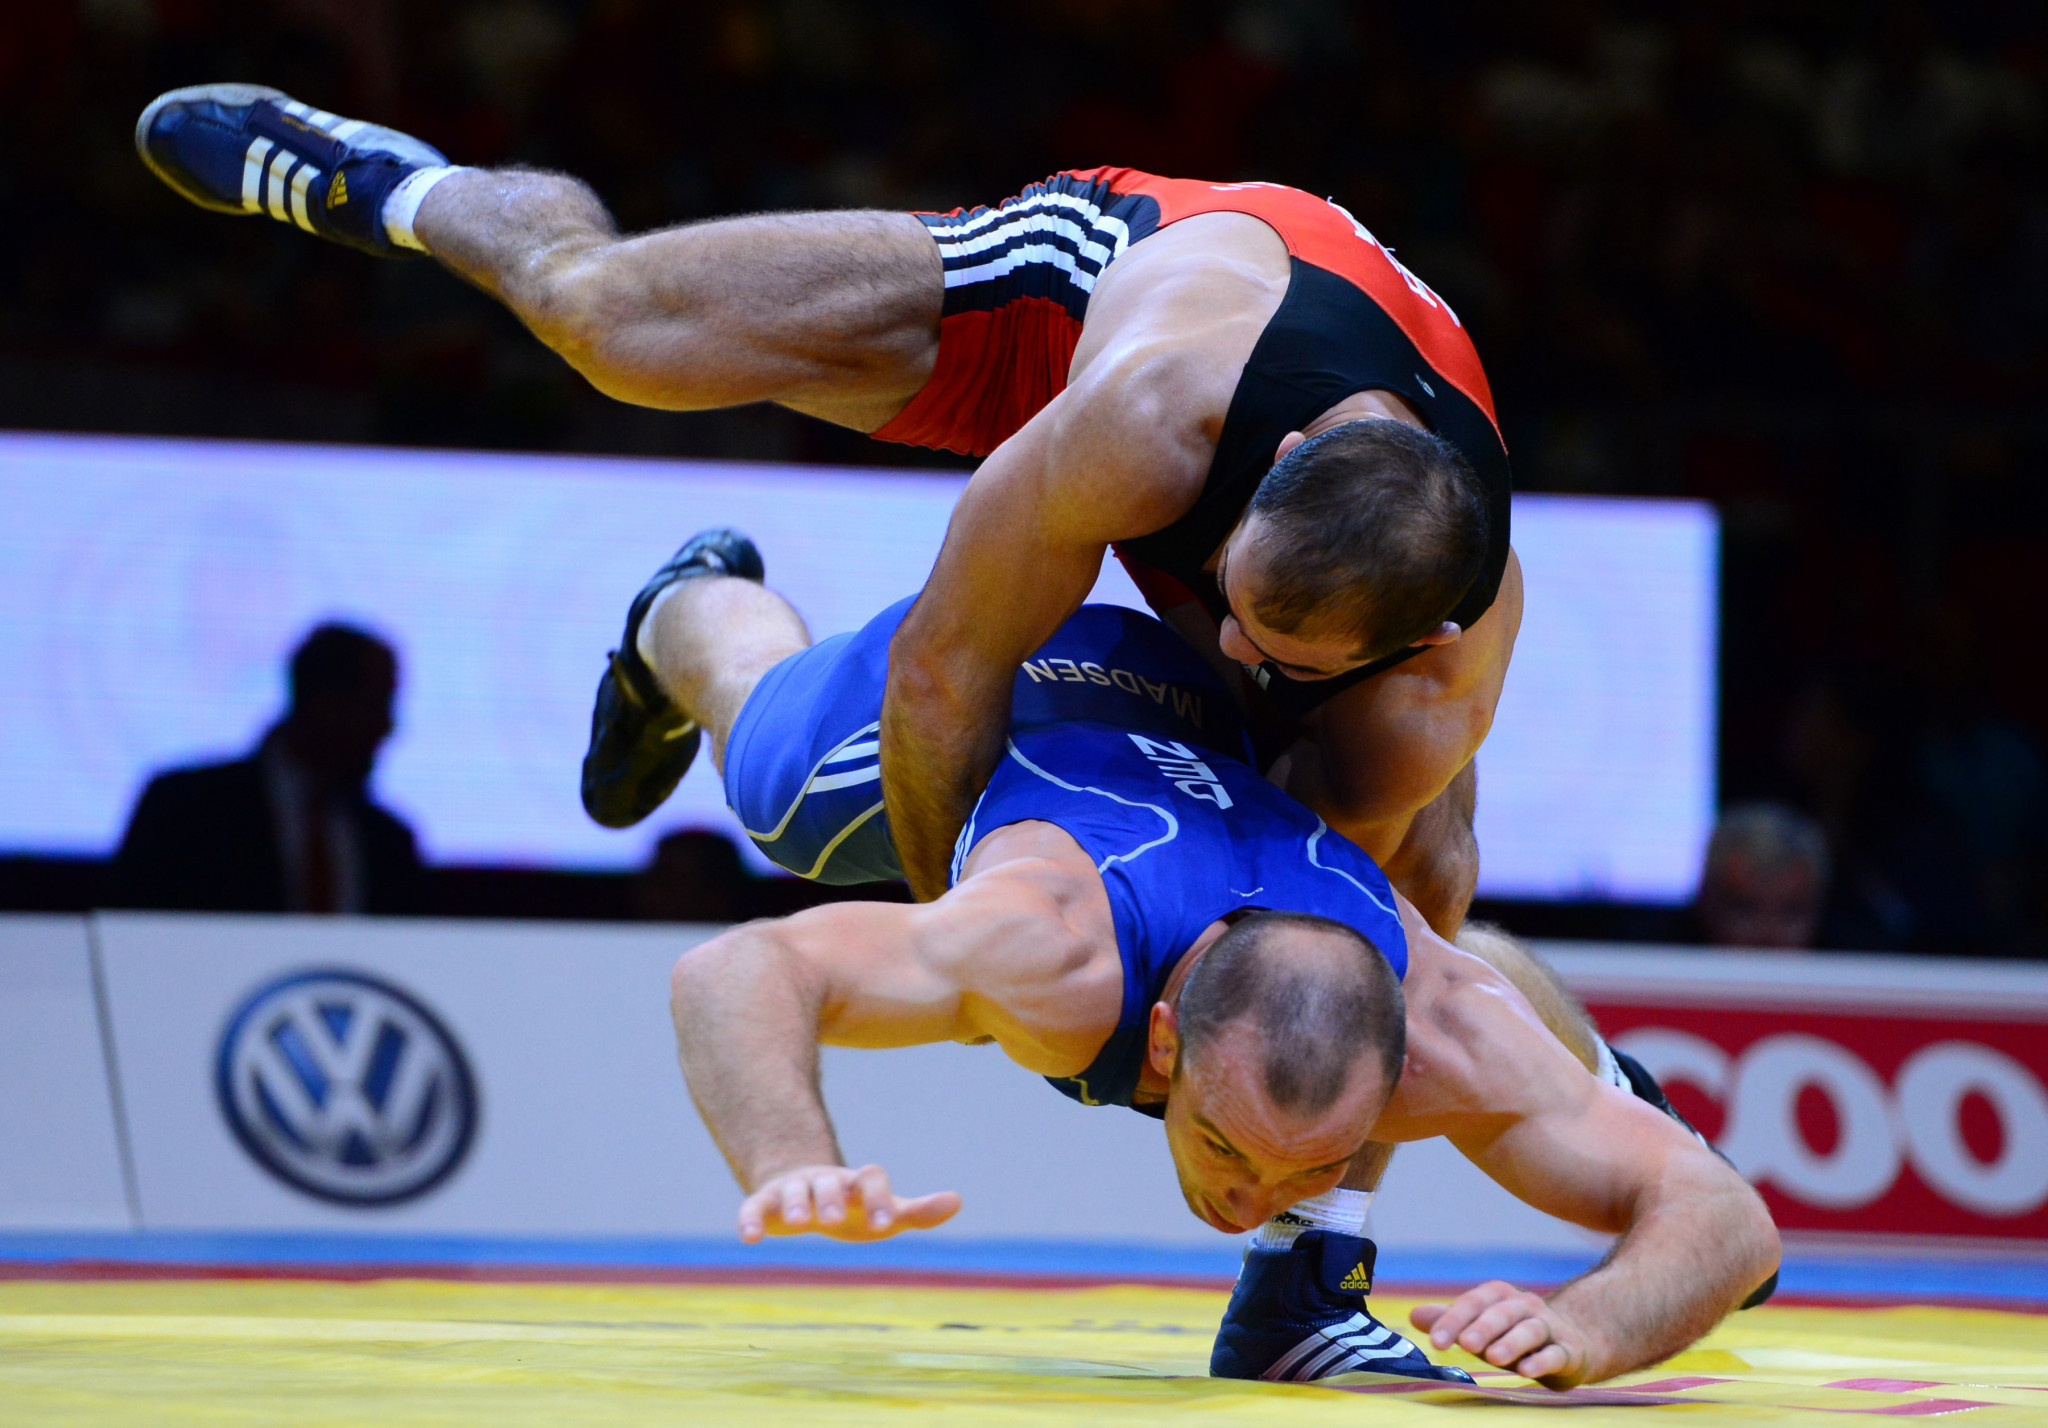 Armenia end Grand Prix de France Henri Deglane with four gold medals in Greco-Roman events